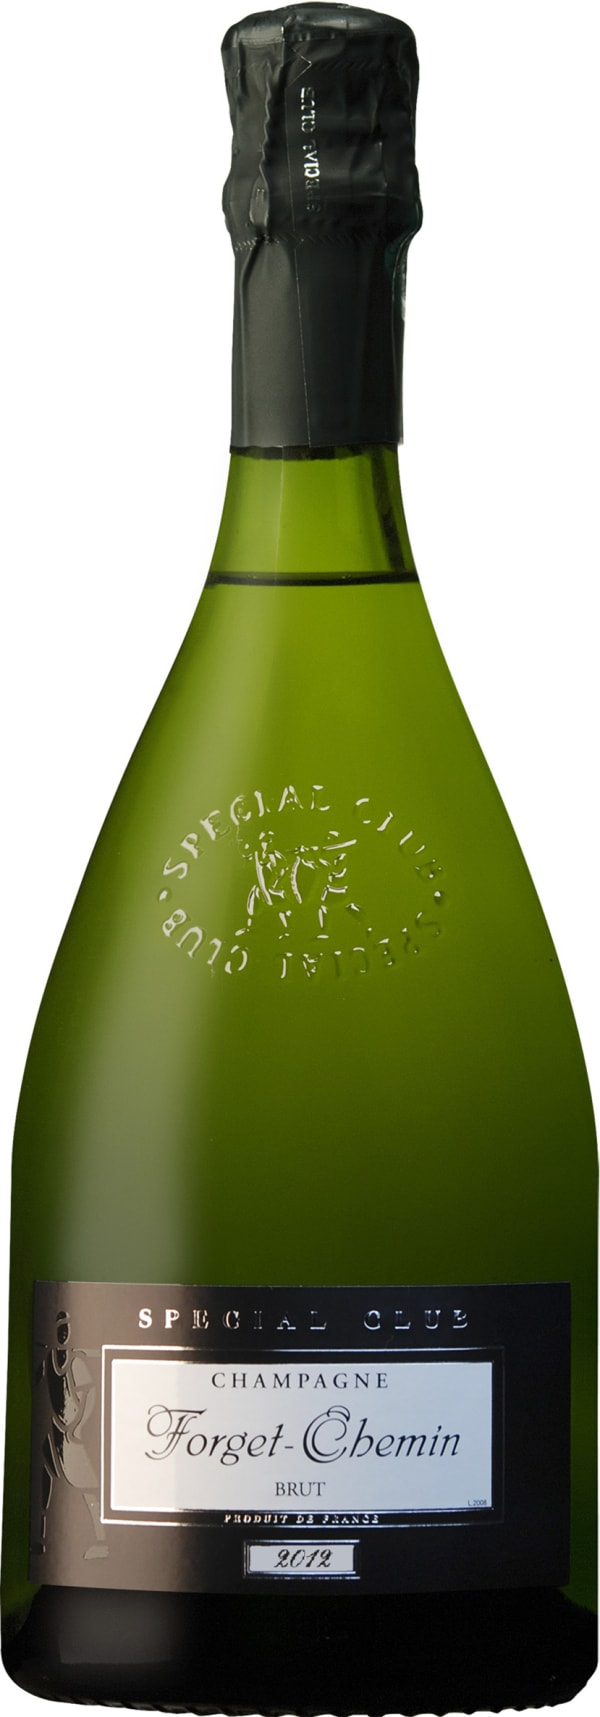 Forget-Chemin Special Club Champagne Brut 2012